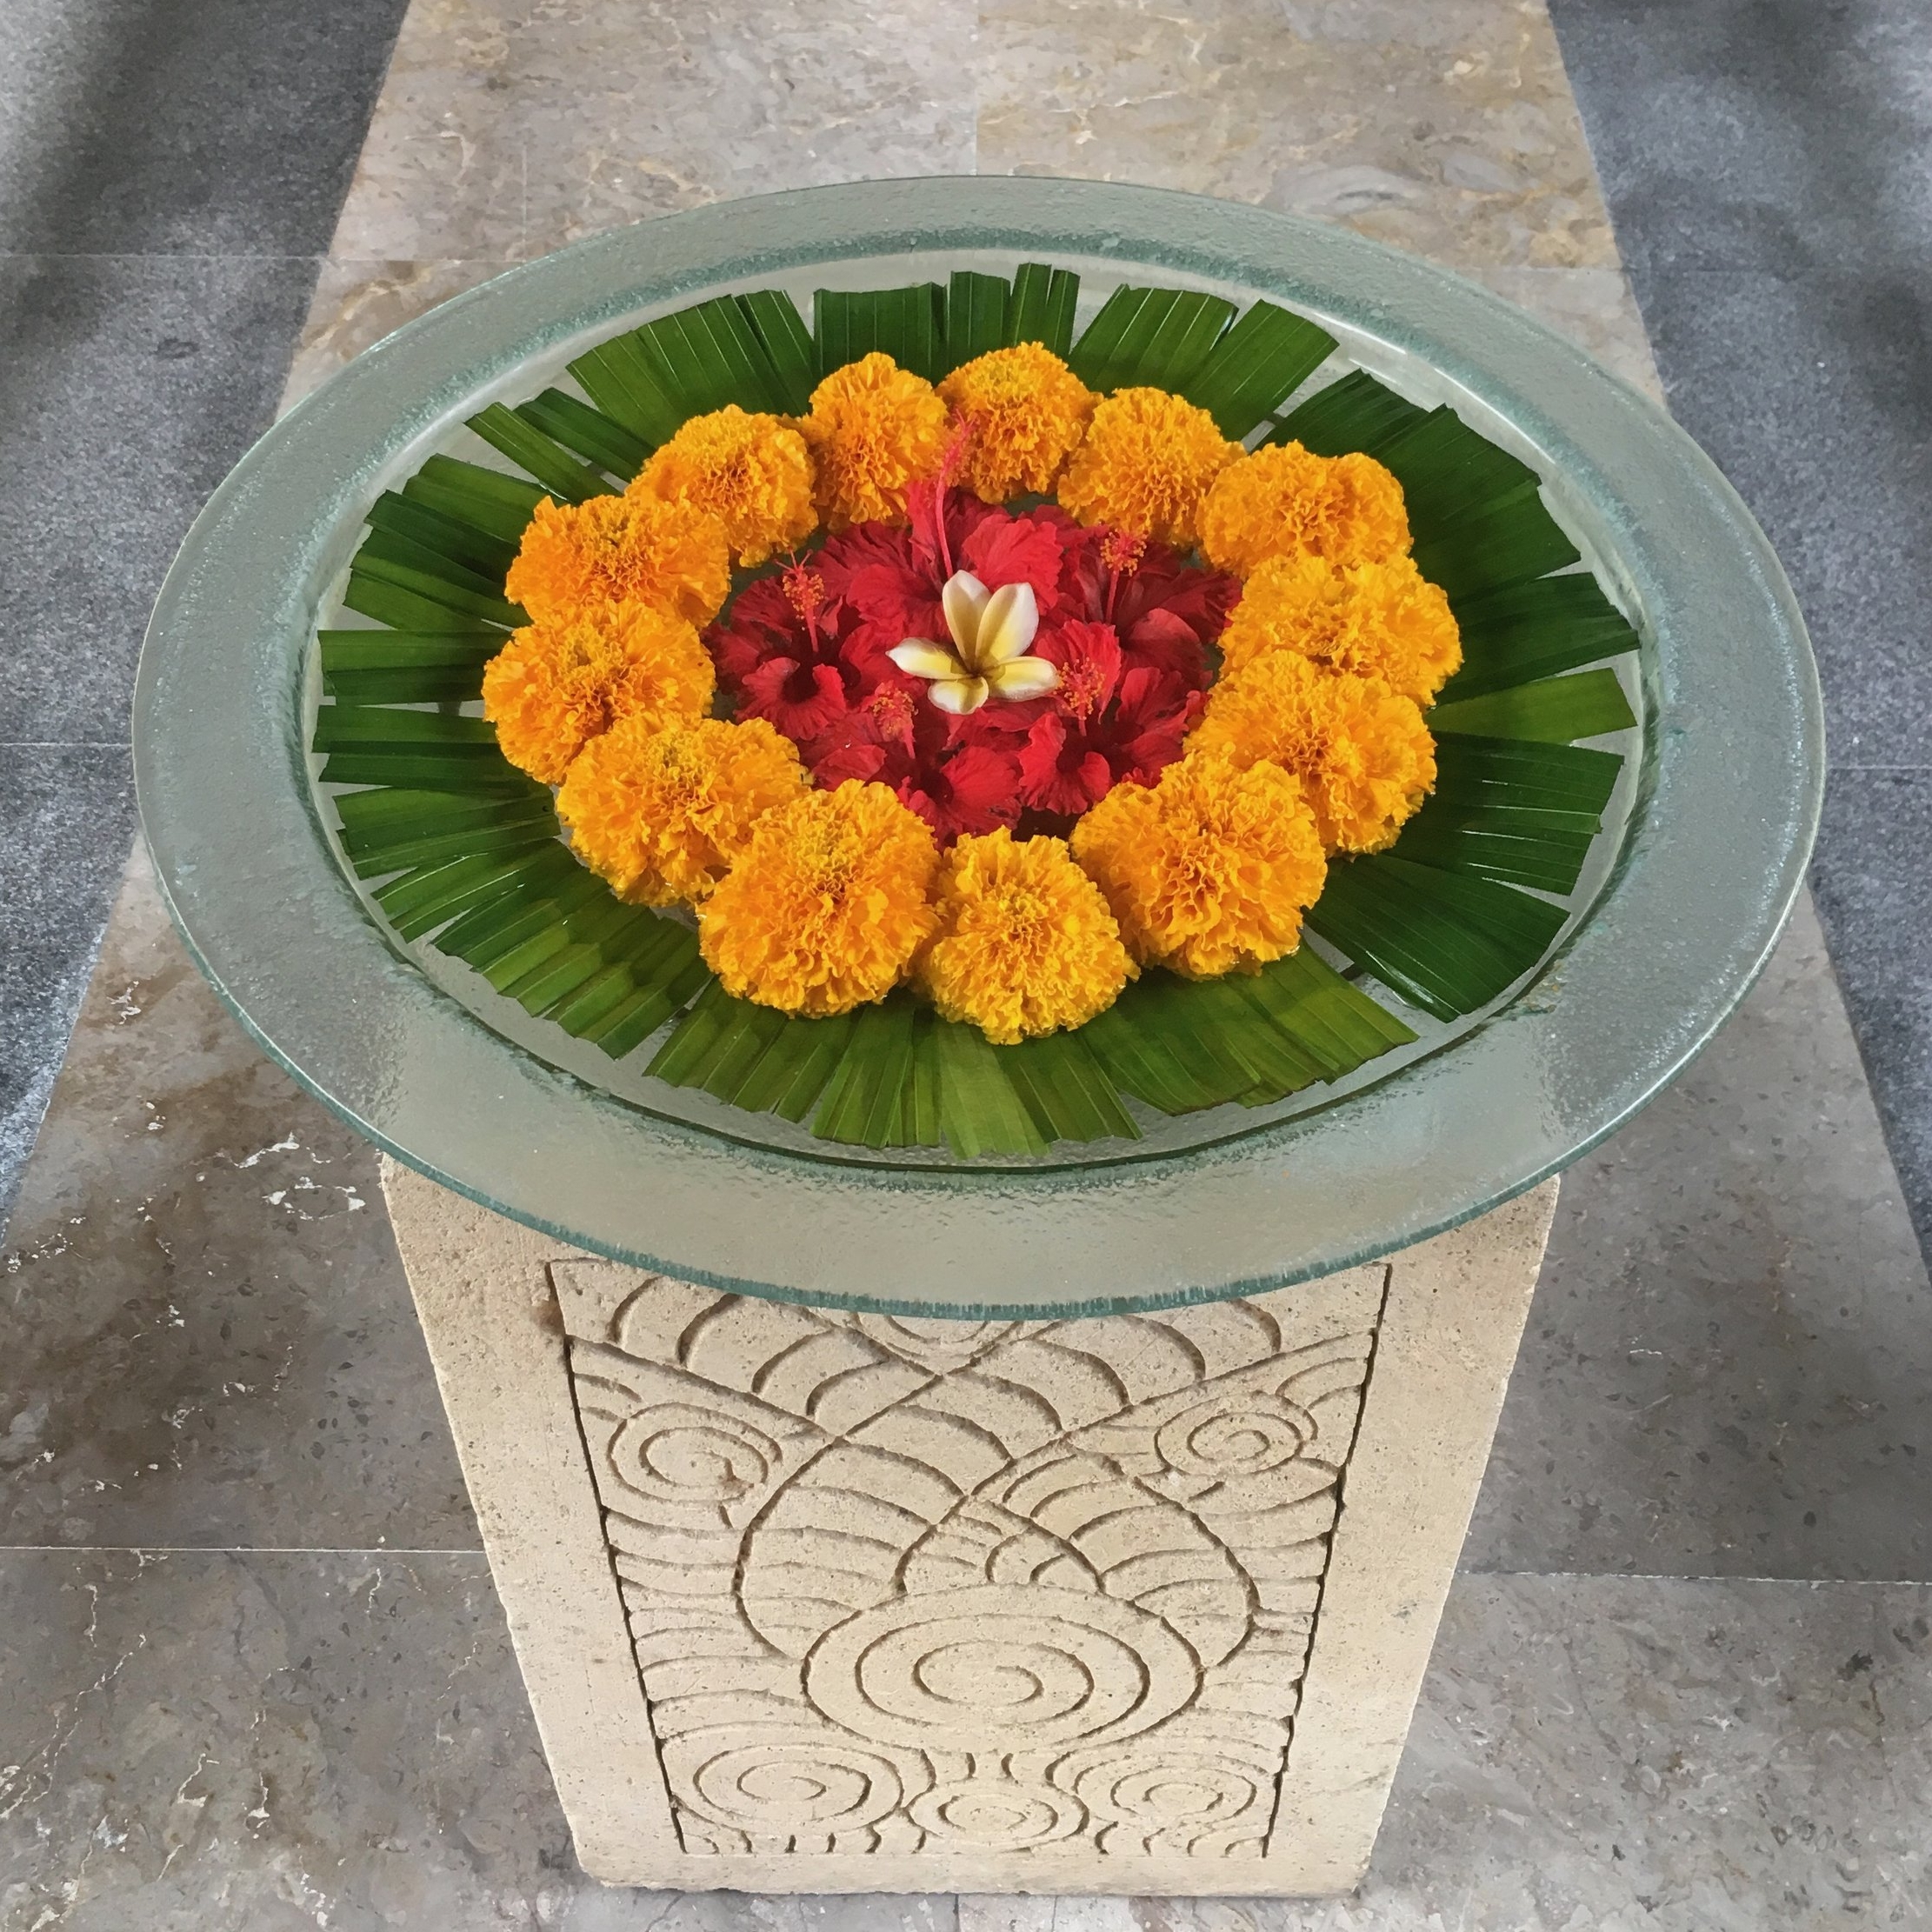 Marigolds and frangipani decorate the entrance to the spa at the Oberoi